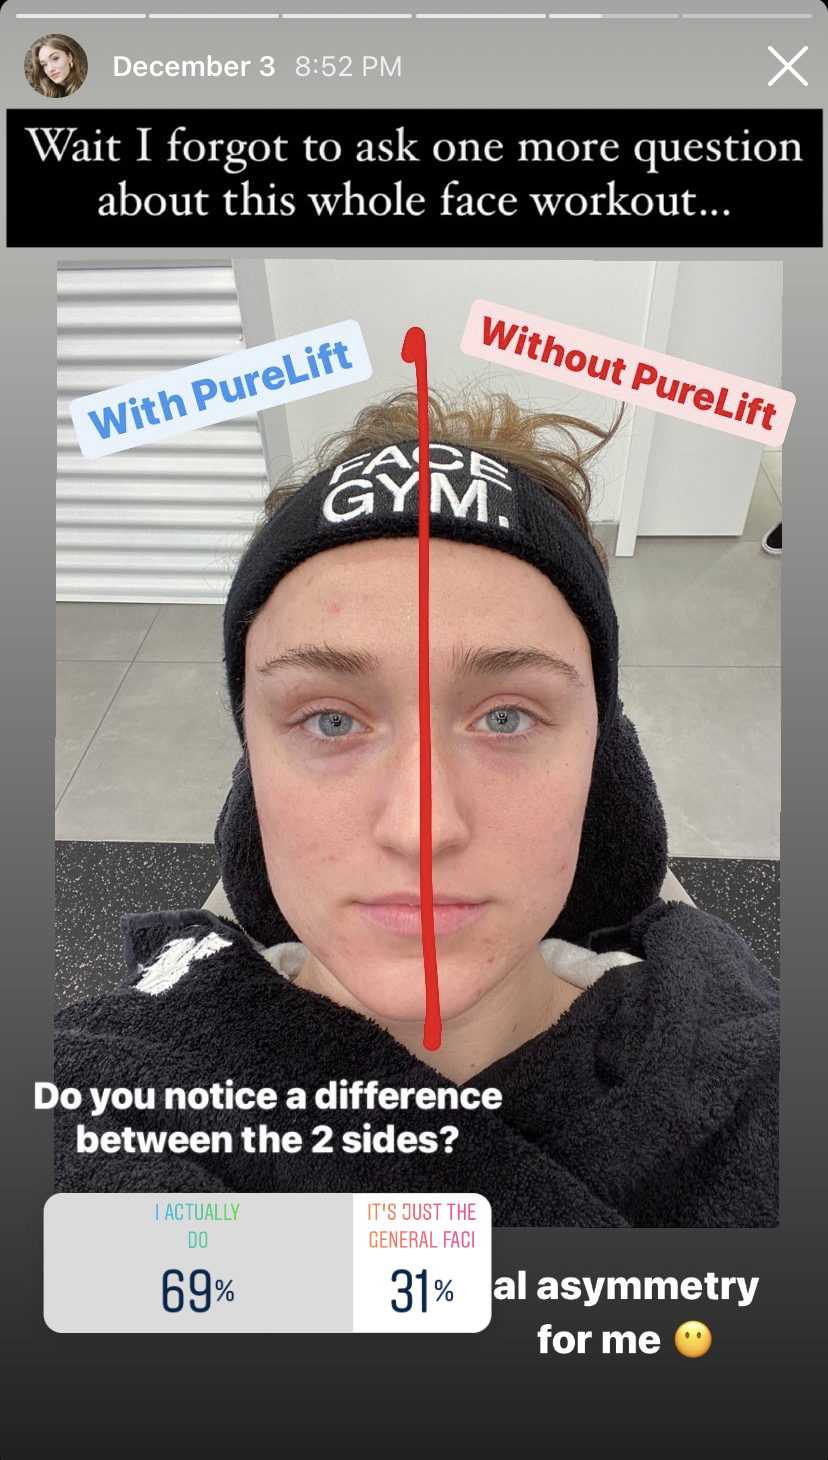 """An Instagram poll asking """"Do you notice a difference between the two sides?""""  and two answers of """"I actually do"""" with 69%, and """"it's just the general facial asymmetry for me"""" with 31%"""